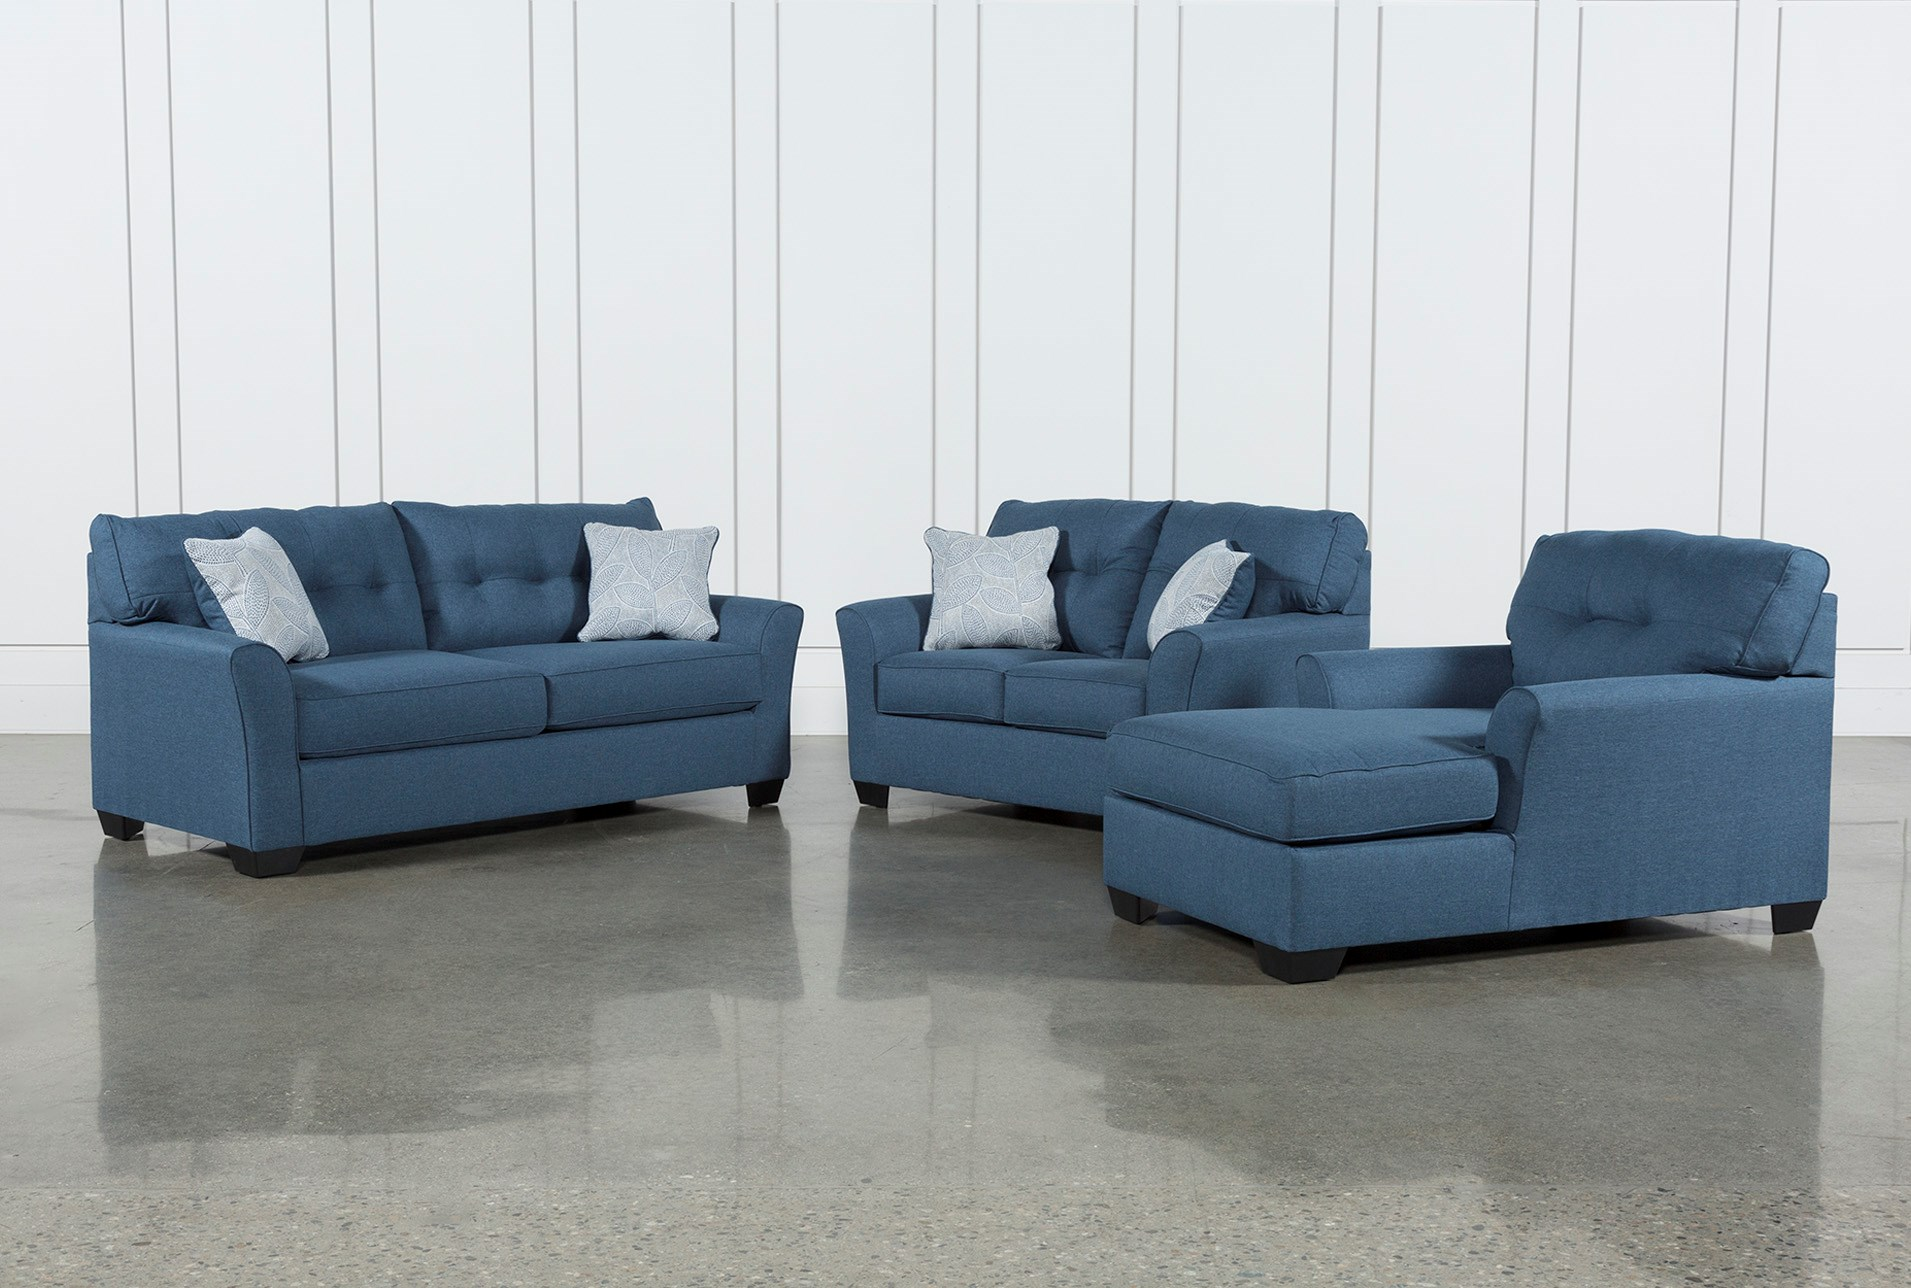 Enjoyable Jacoby Denim 3 Piece Living Room Set Download Free Architecture Designs Scobabritishbridgeorg